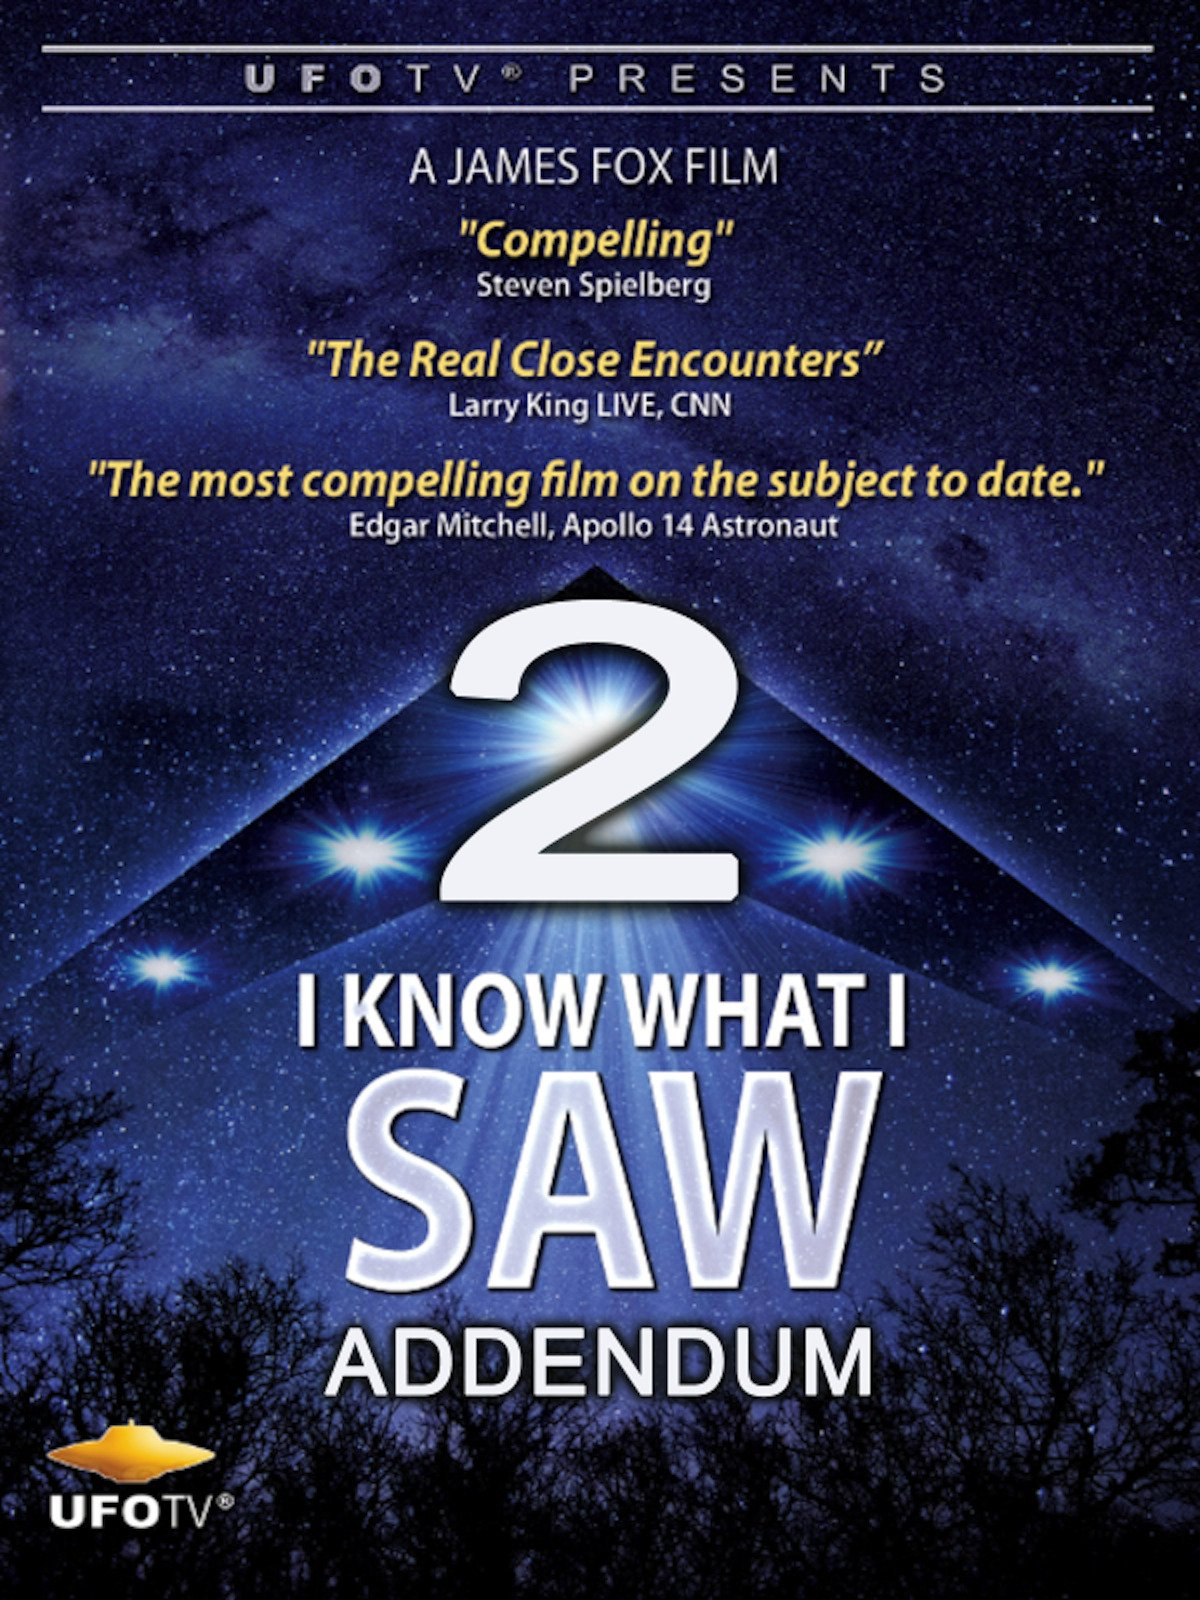 UFOTV Presents: I Know What I Saw Part 2 Addendum